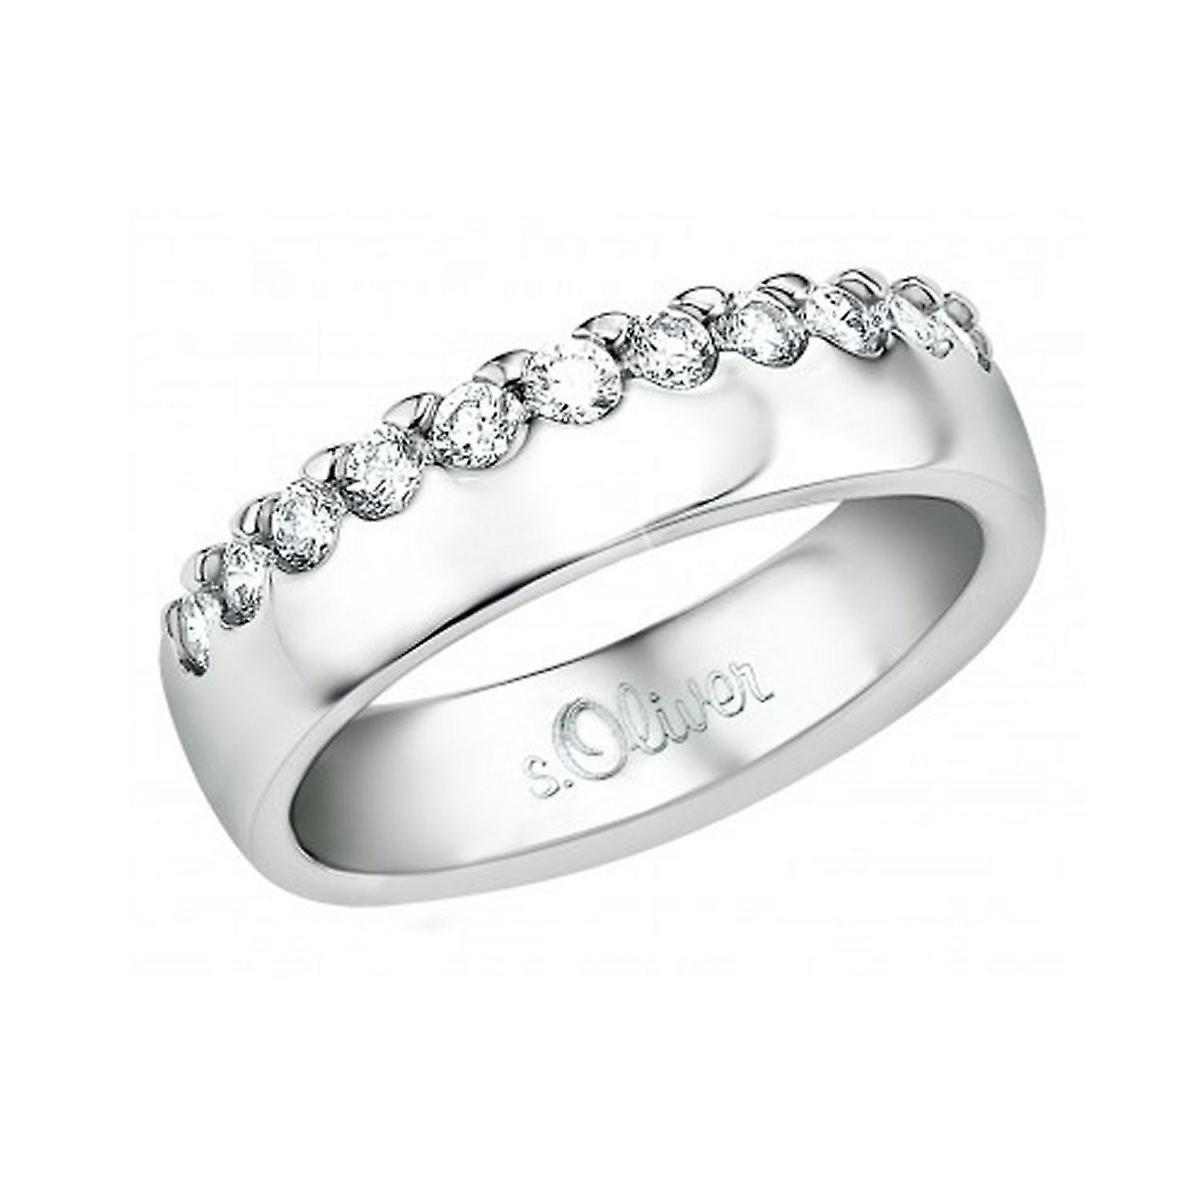 s.Oliver Jewel ladies ring silver Zirkonia SO809